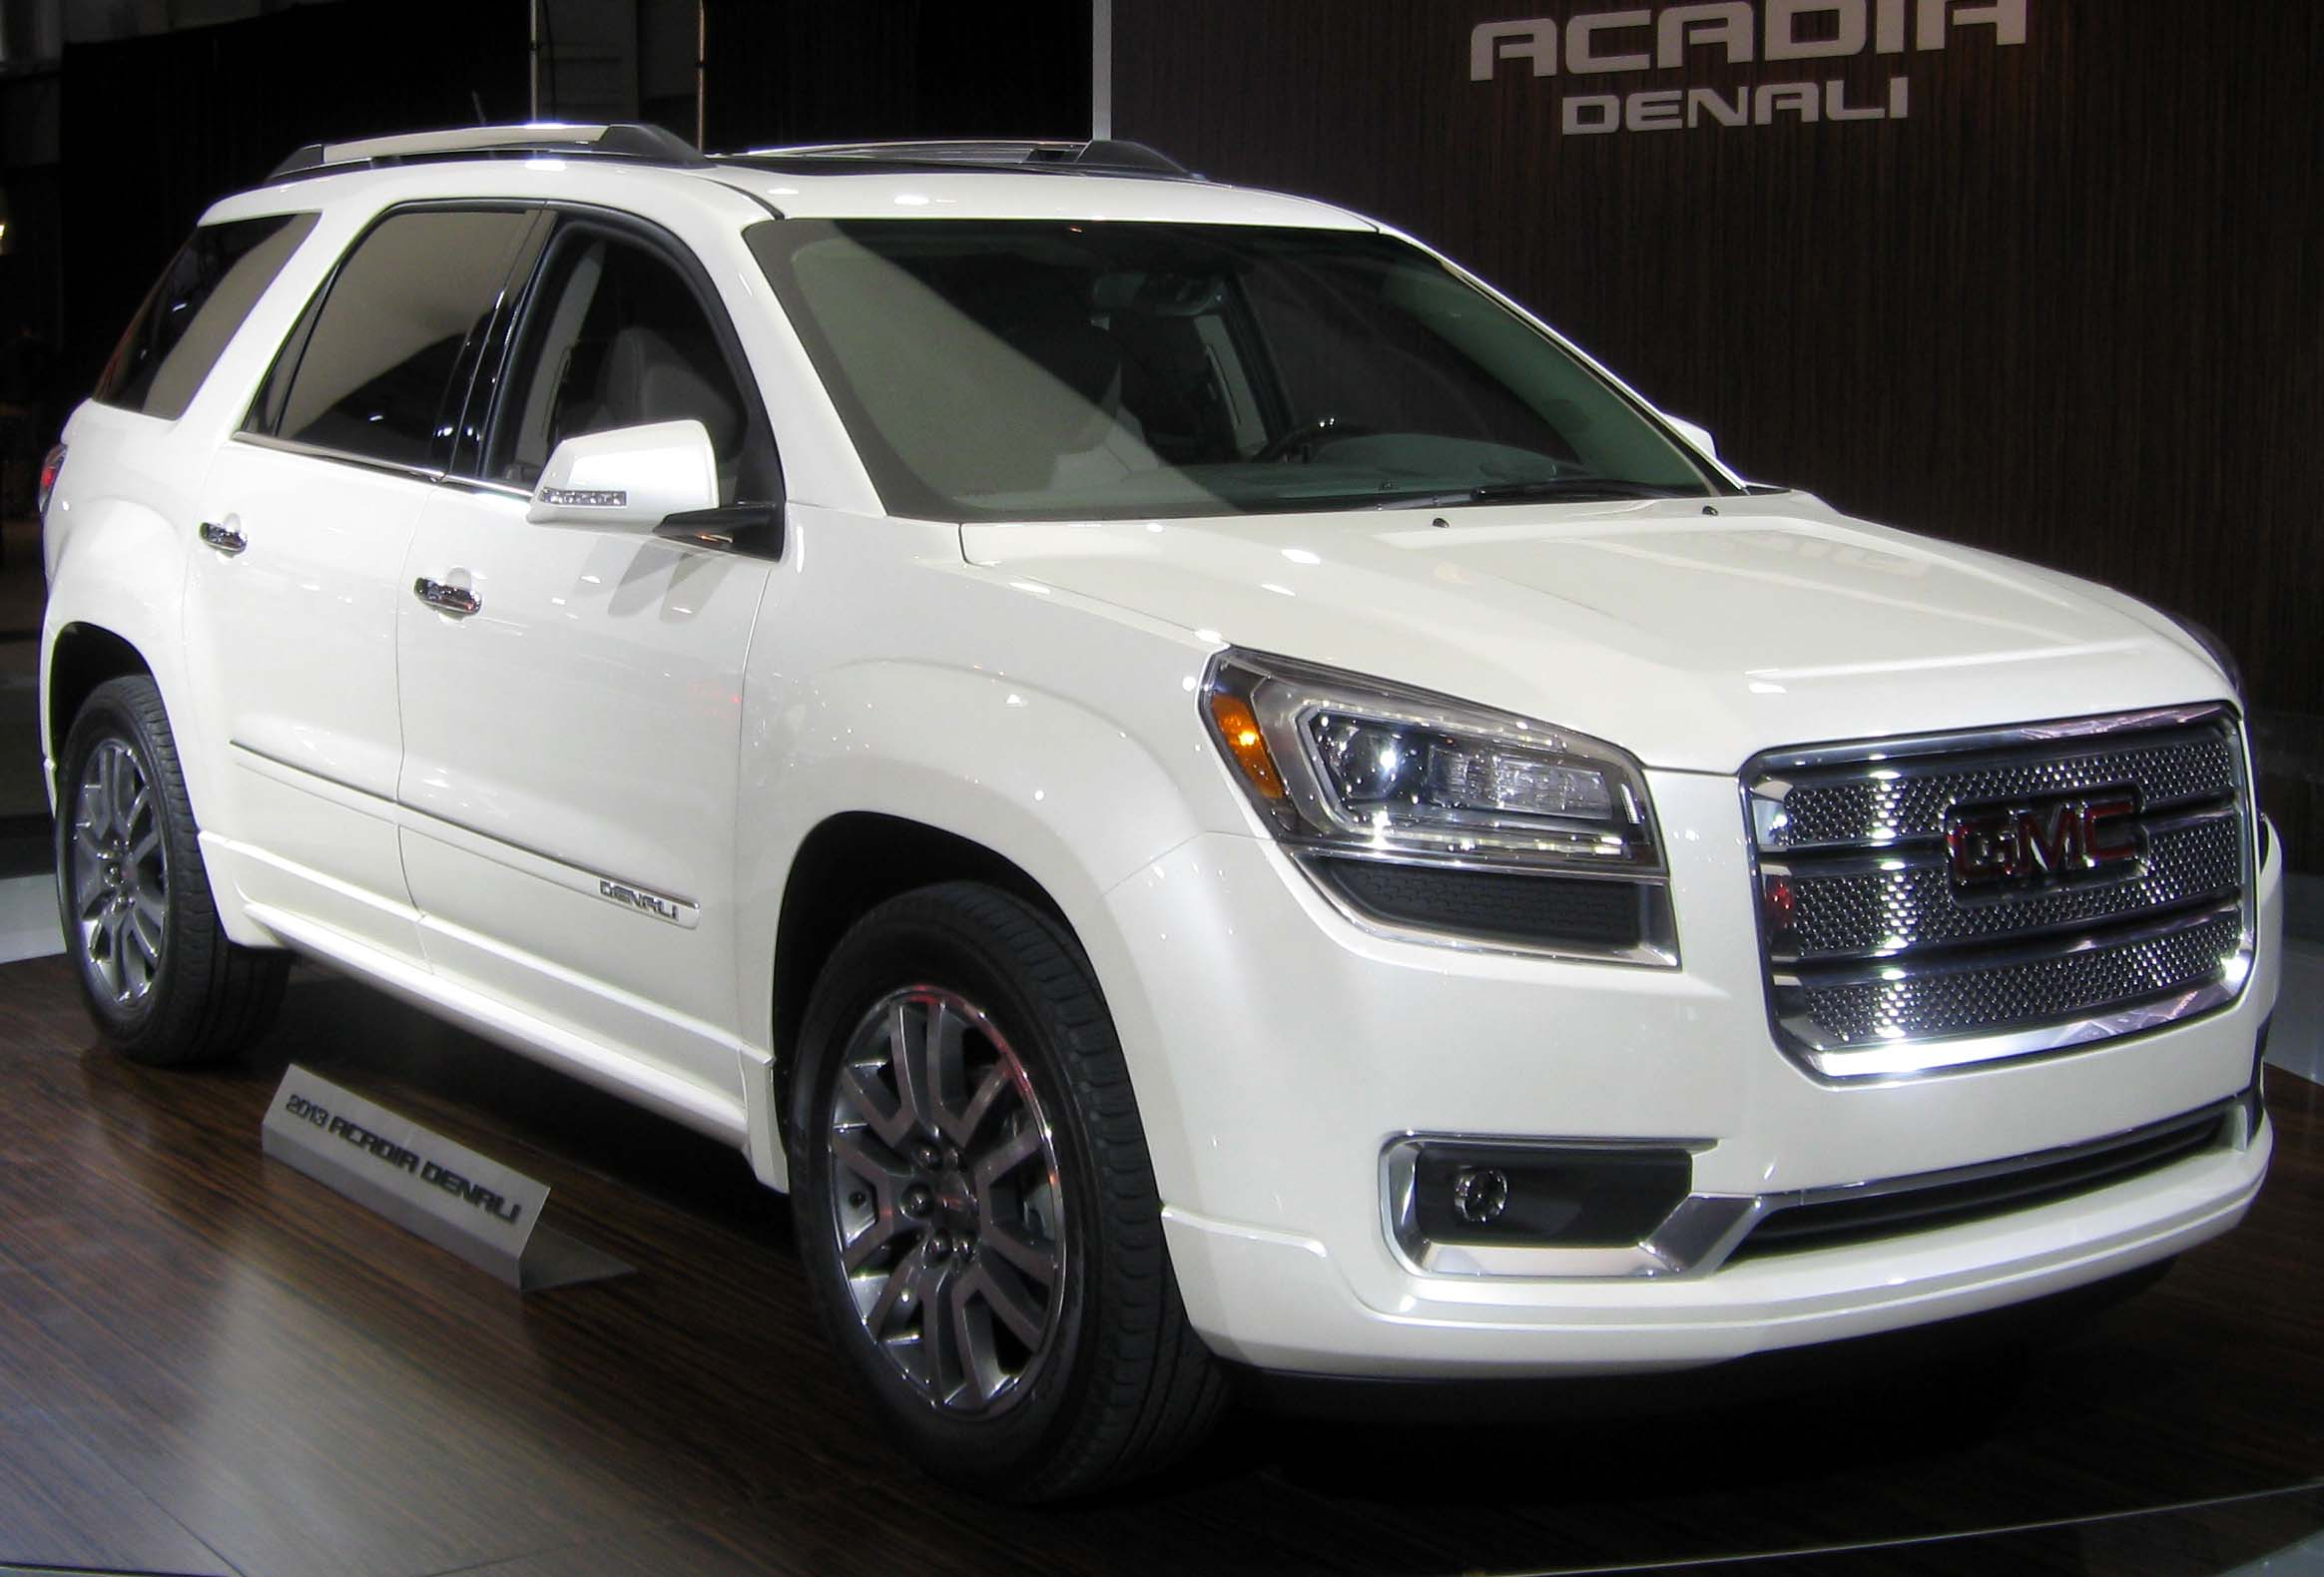 gmc acadia with captains chairs rocking nursing chair topworldauto gt photos of photo galleries